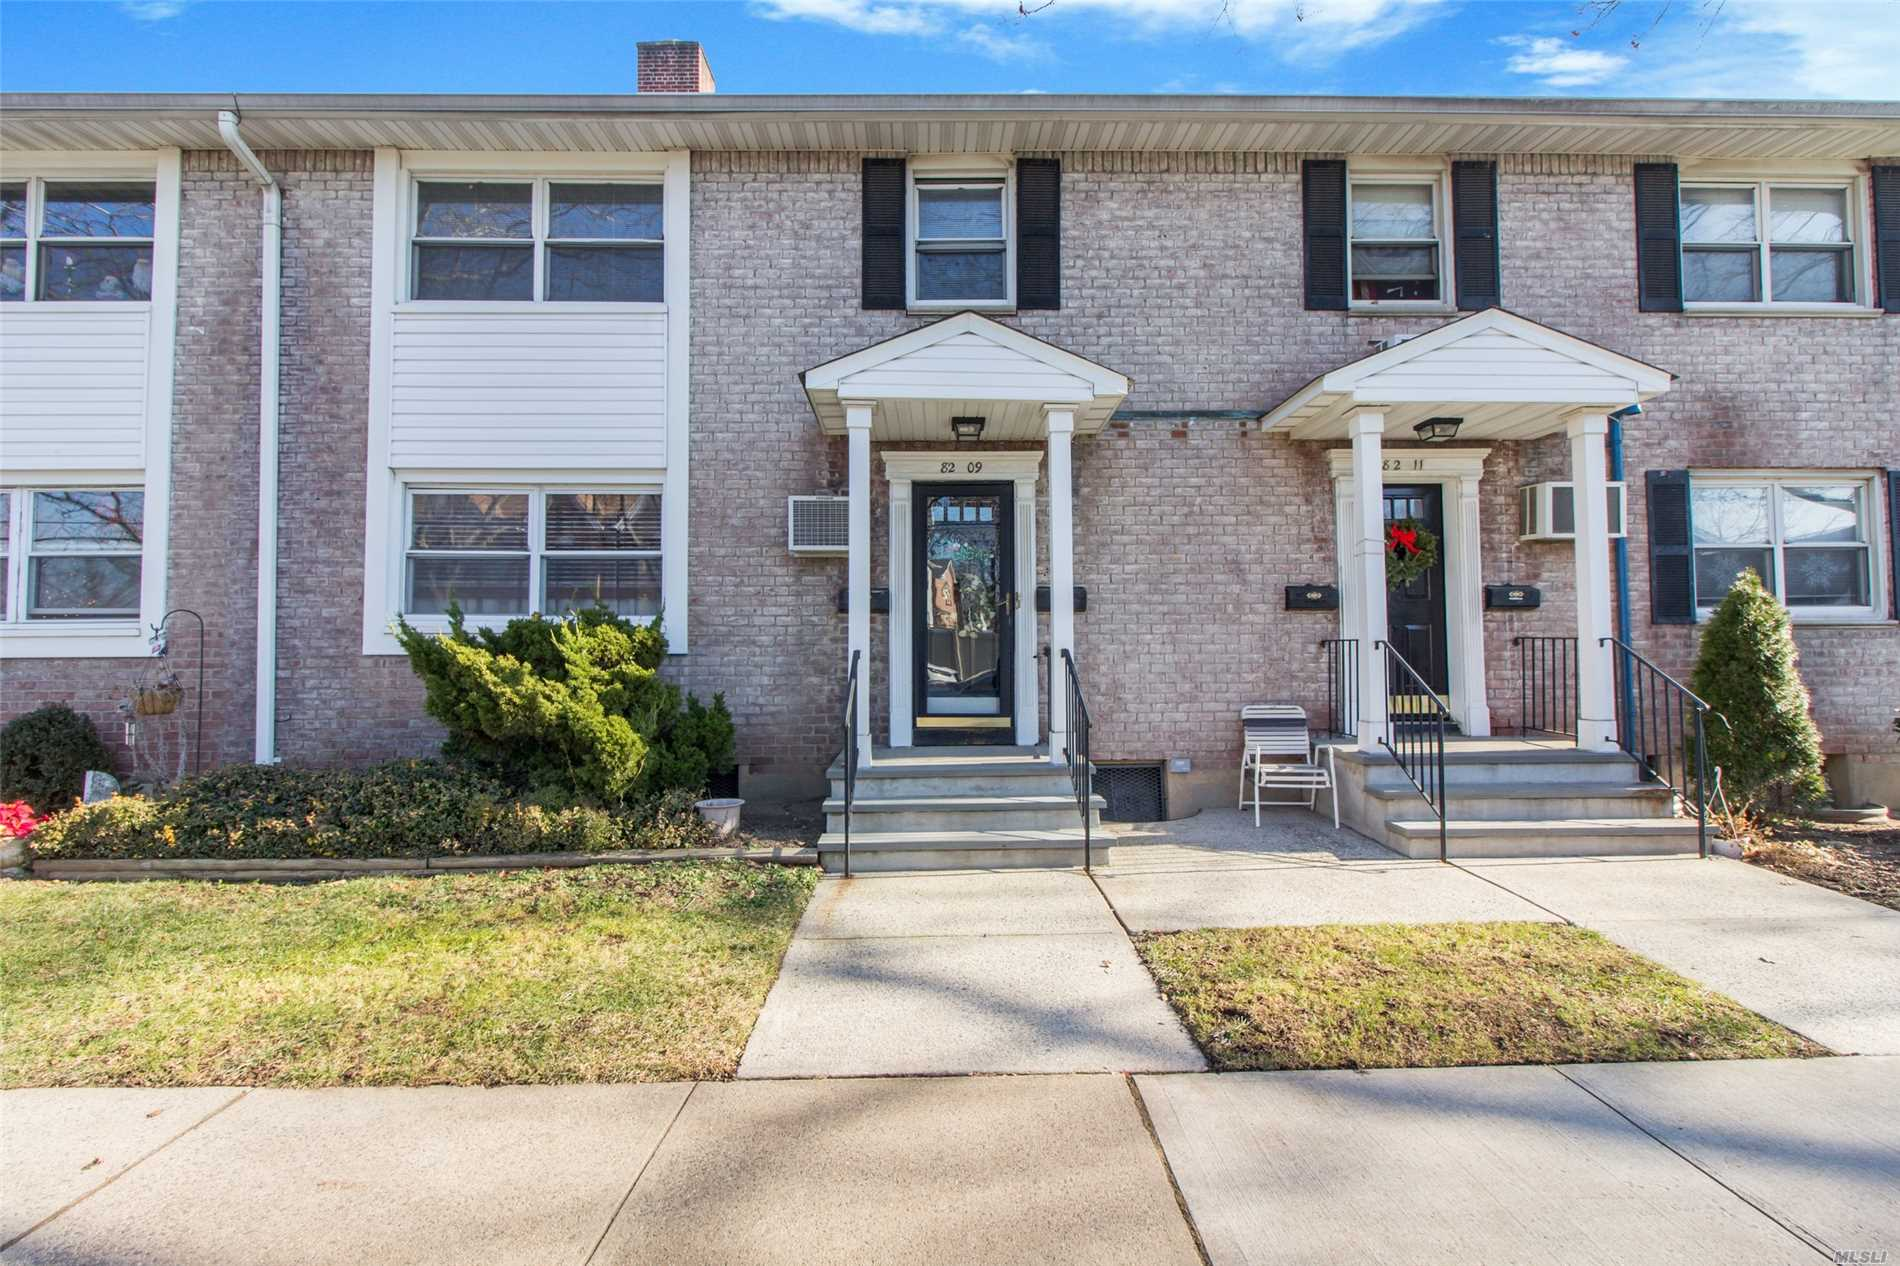 Sun-Filled Second Floor Walk Up Unit. Beautiful Wood Floors, Large Open Lr/Dr, Eik, One Bedroom, Full Bathroom And Pull-Down Attic With Plenty Of Storage. Laundry Facility In Basement And Parking Is First Come First Serve With Sticker.